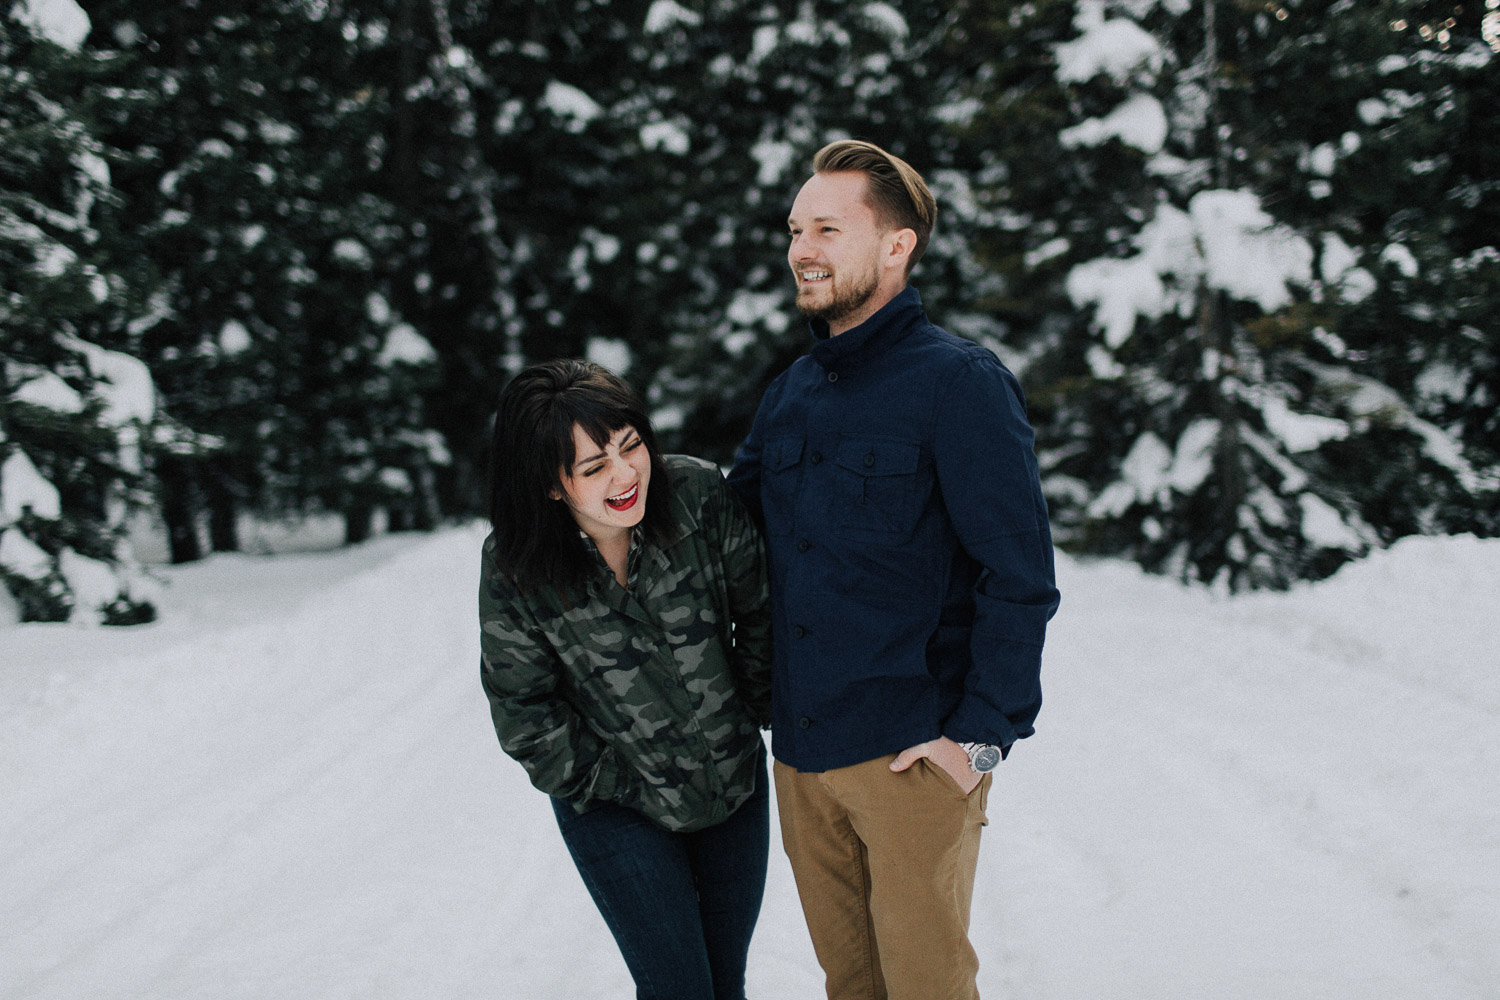 Image of couple laugh tougher in snow